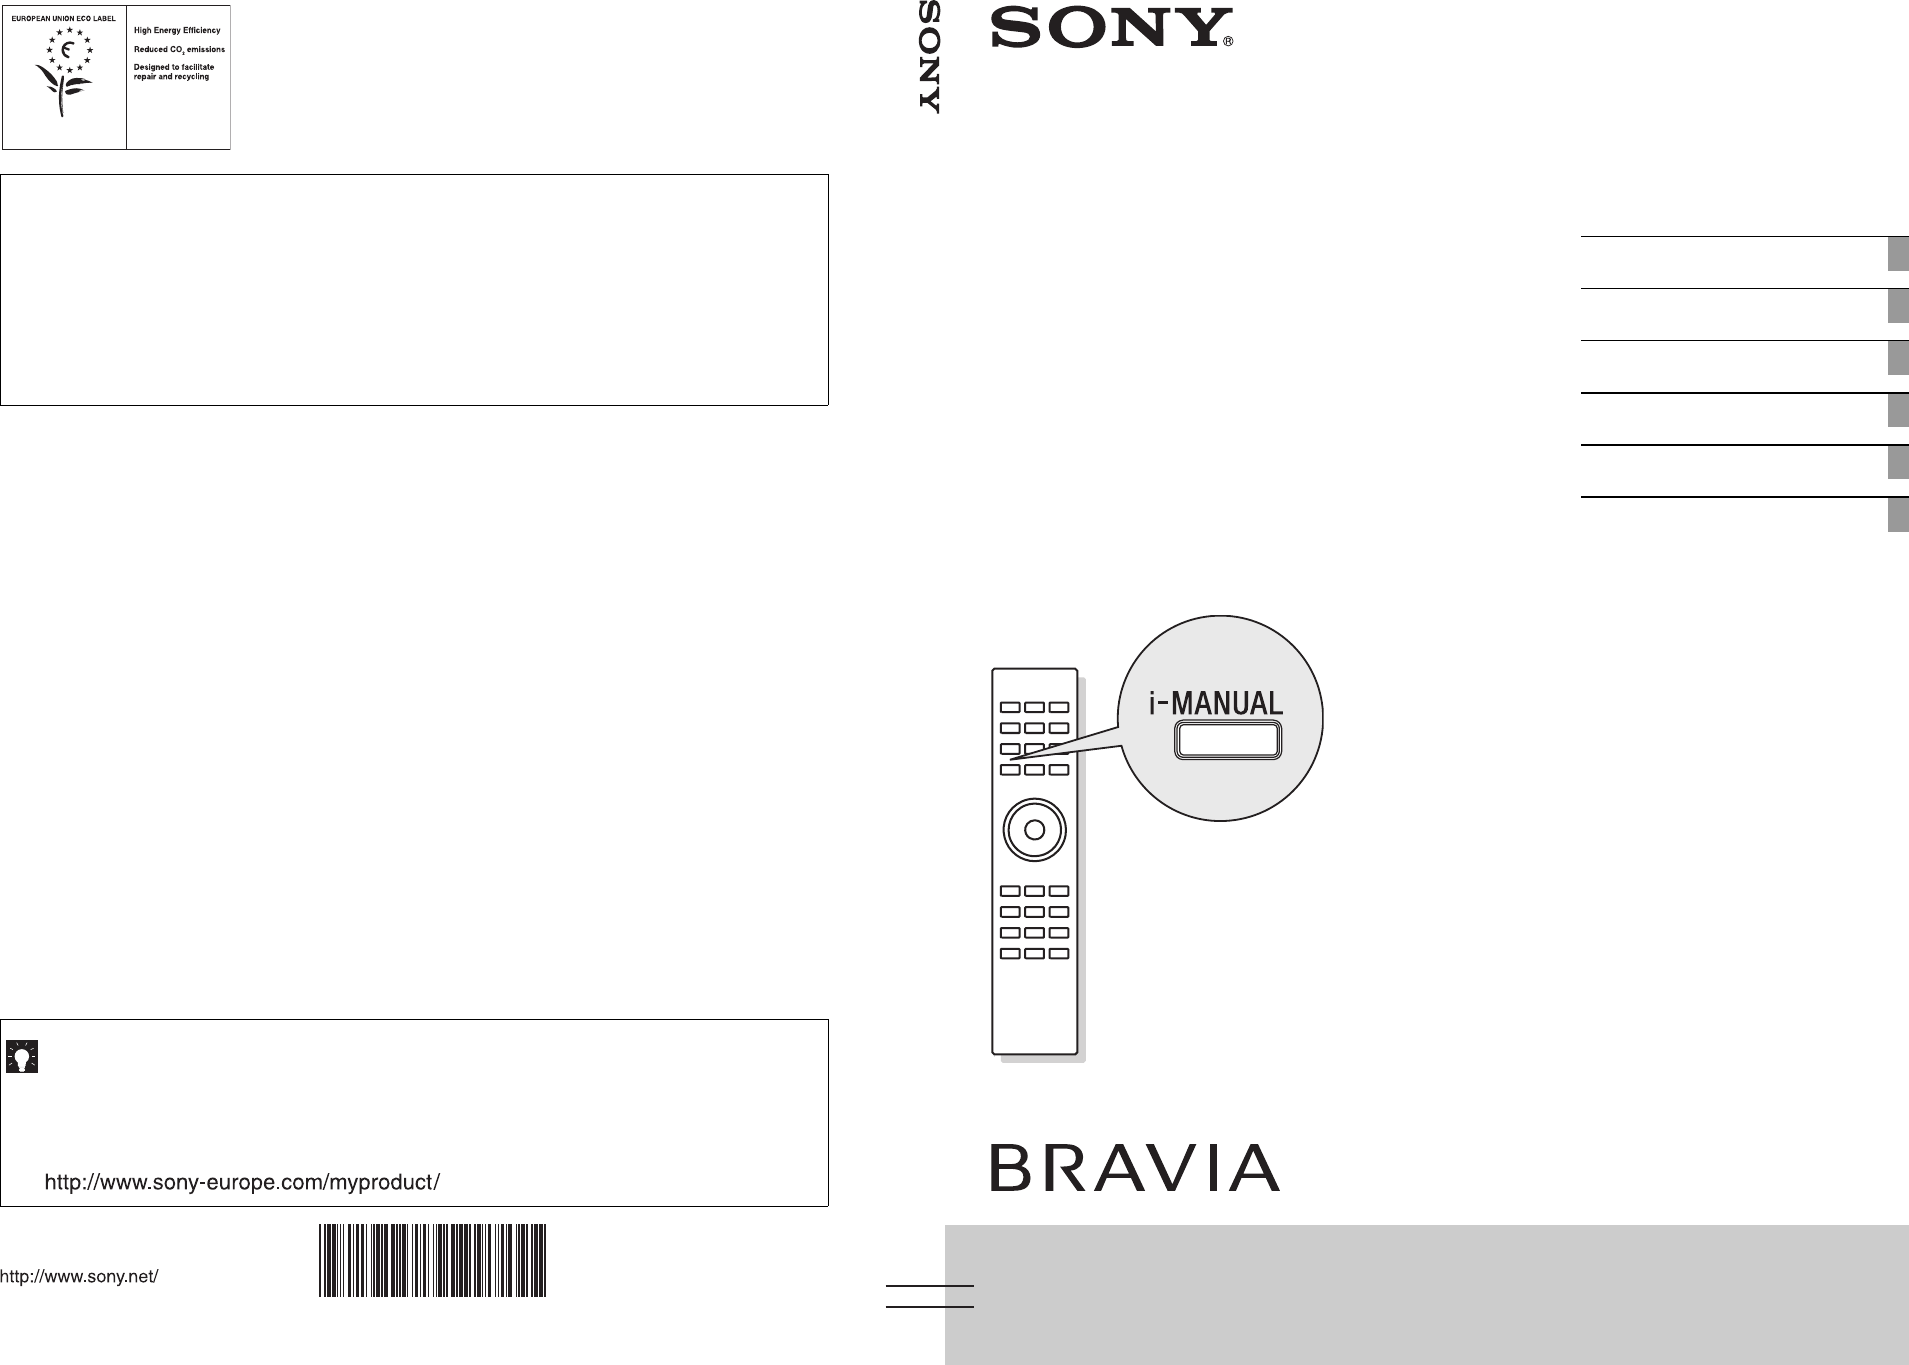 At Sony we are constantly rethinking and redesigning in order to create  innovative